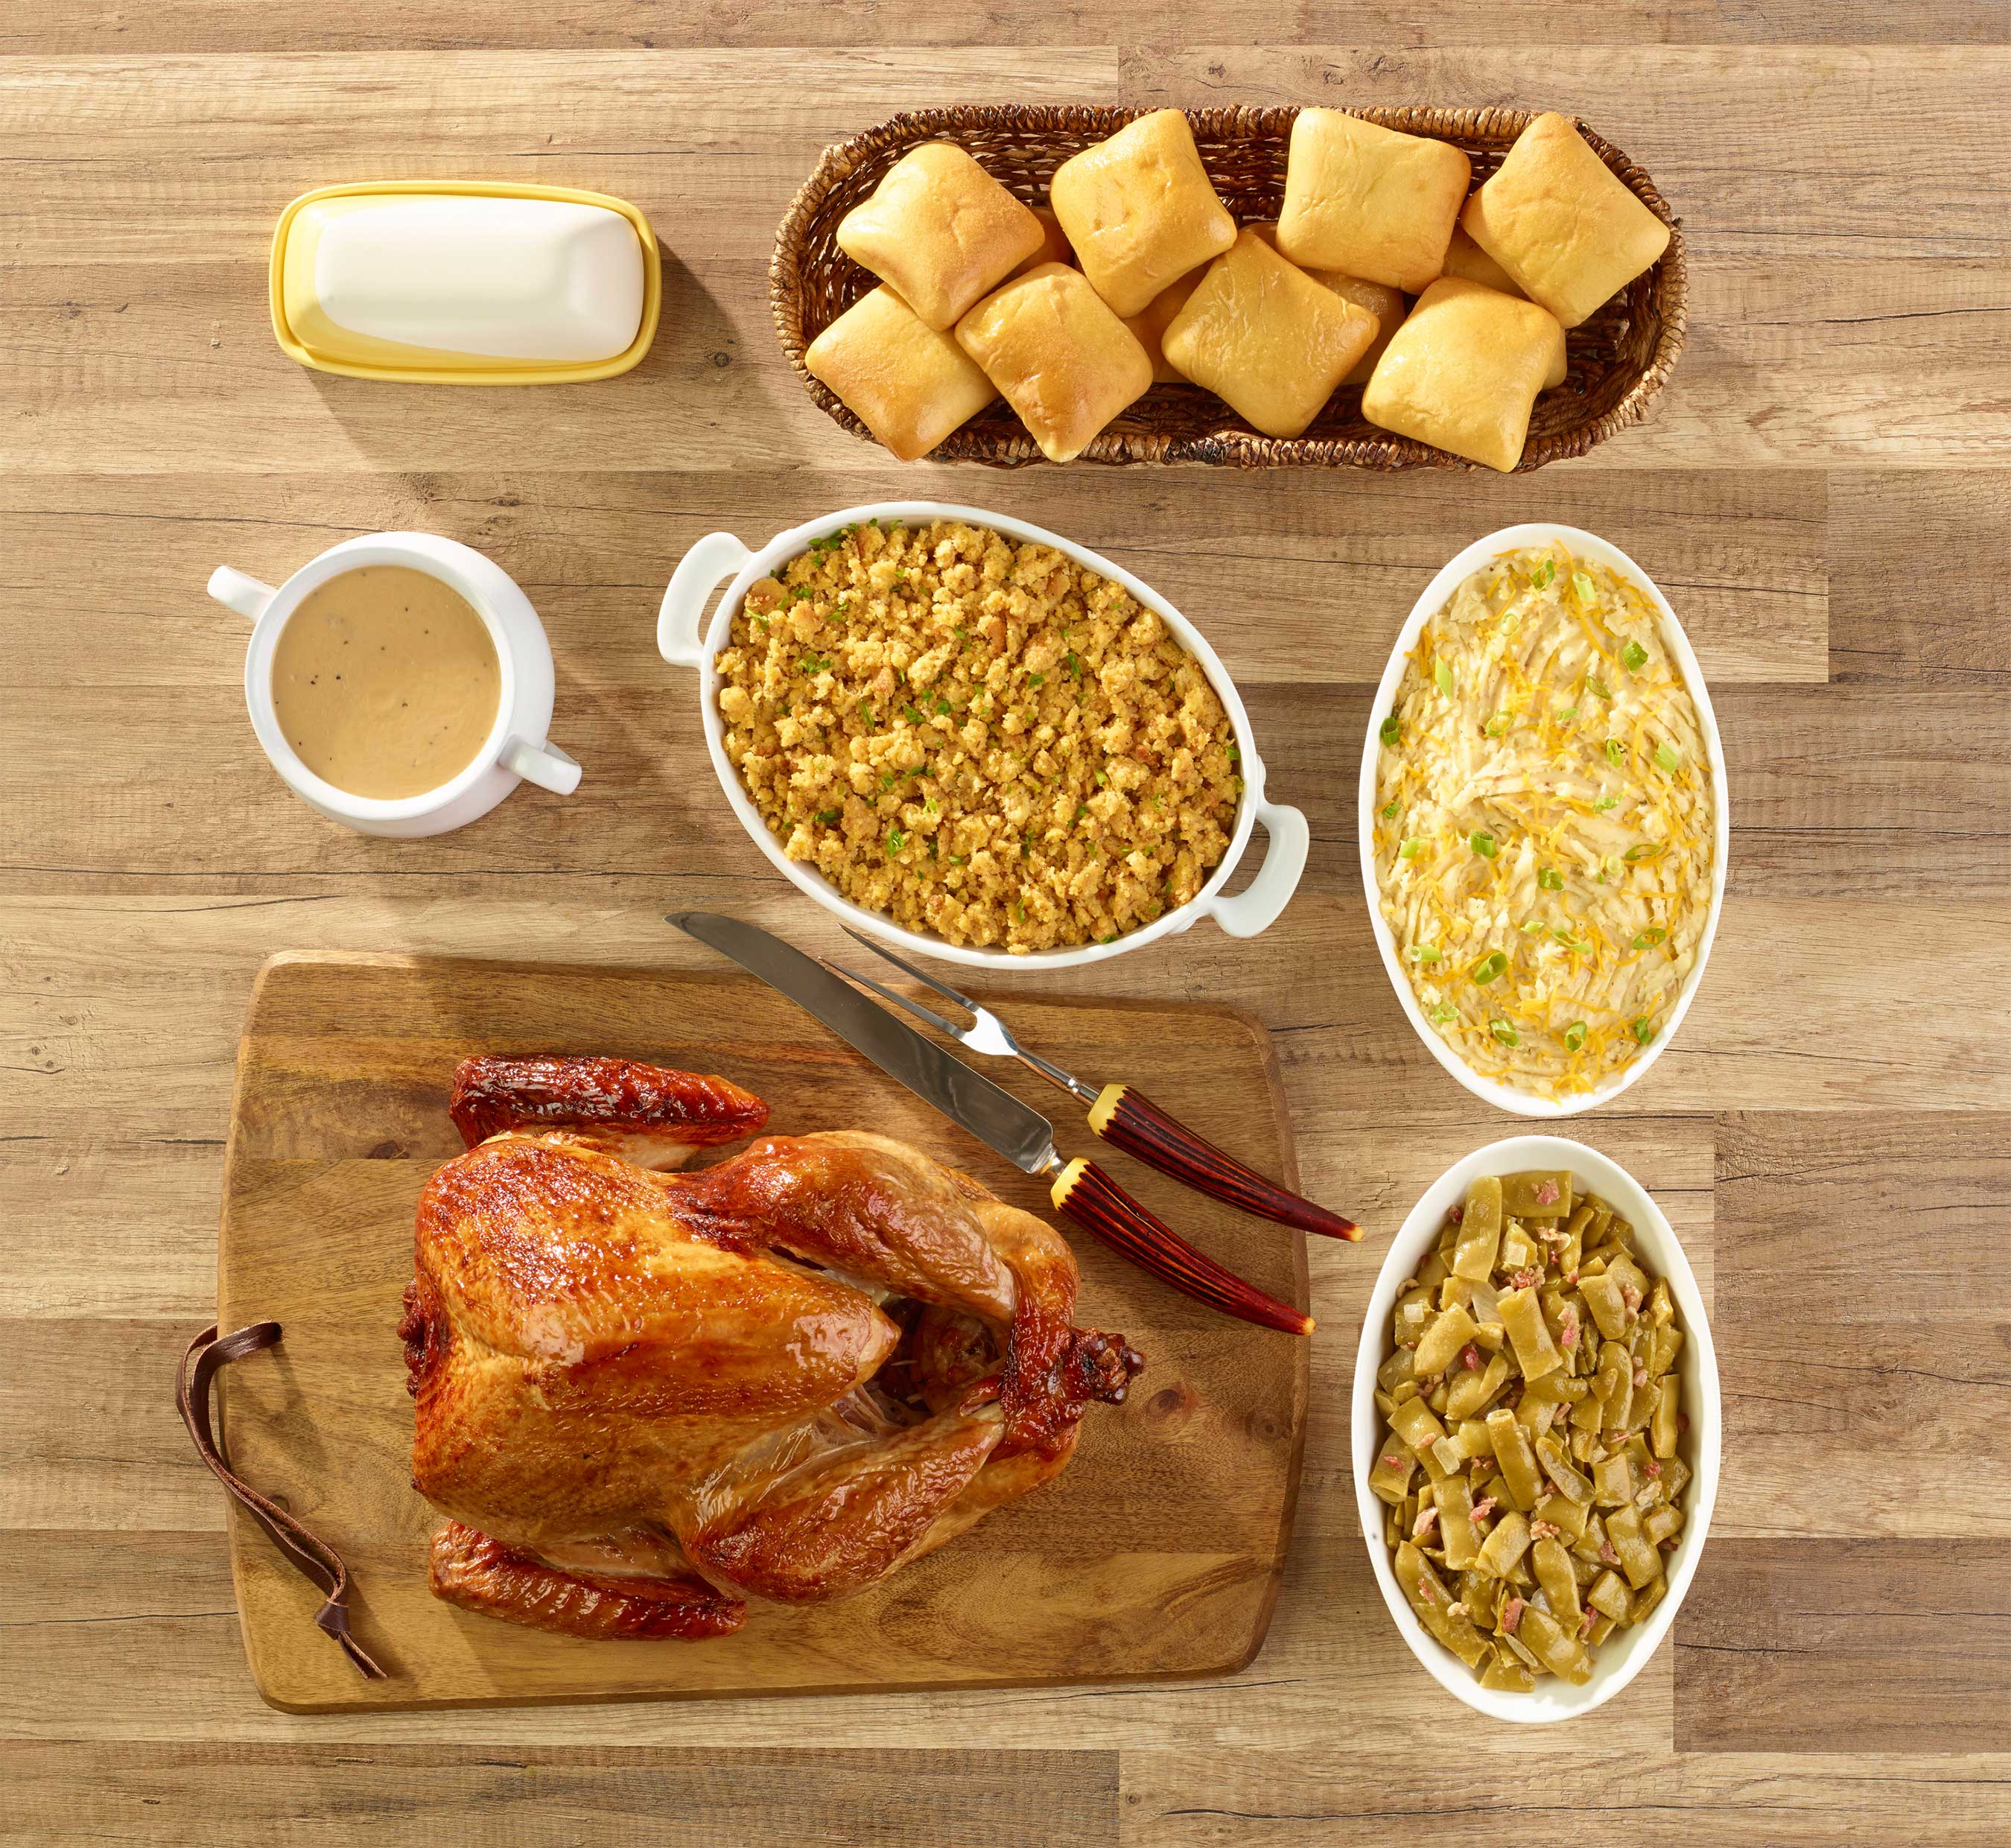 Dickey's Barbecue Pit does all the work so you can enjoy your holiday celebration without the fuss.